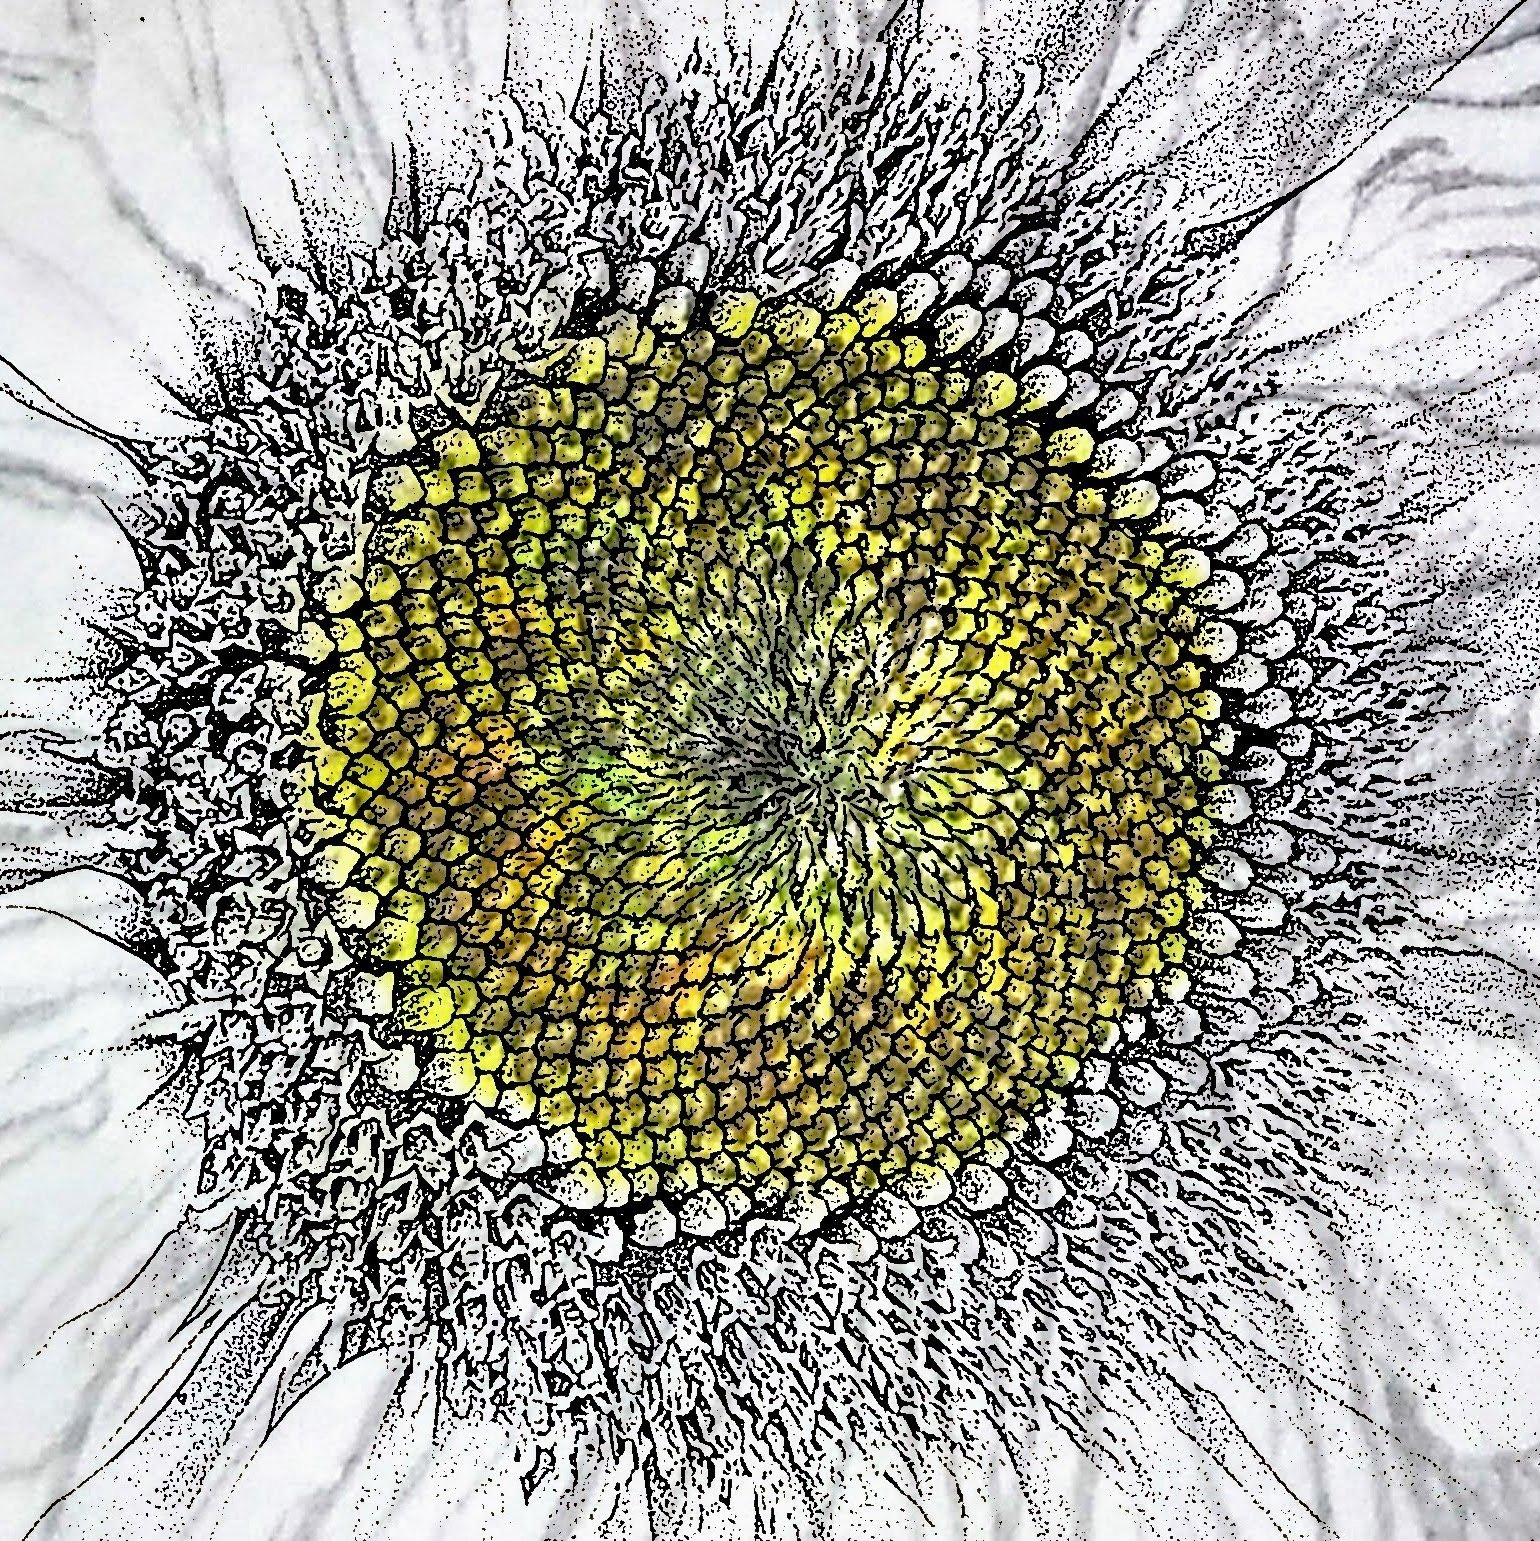 botanical artist stephey sunlight pen and ink drawing